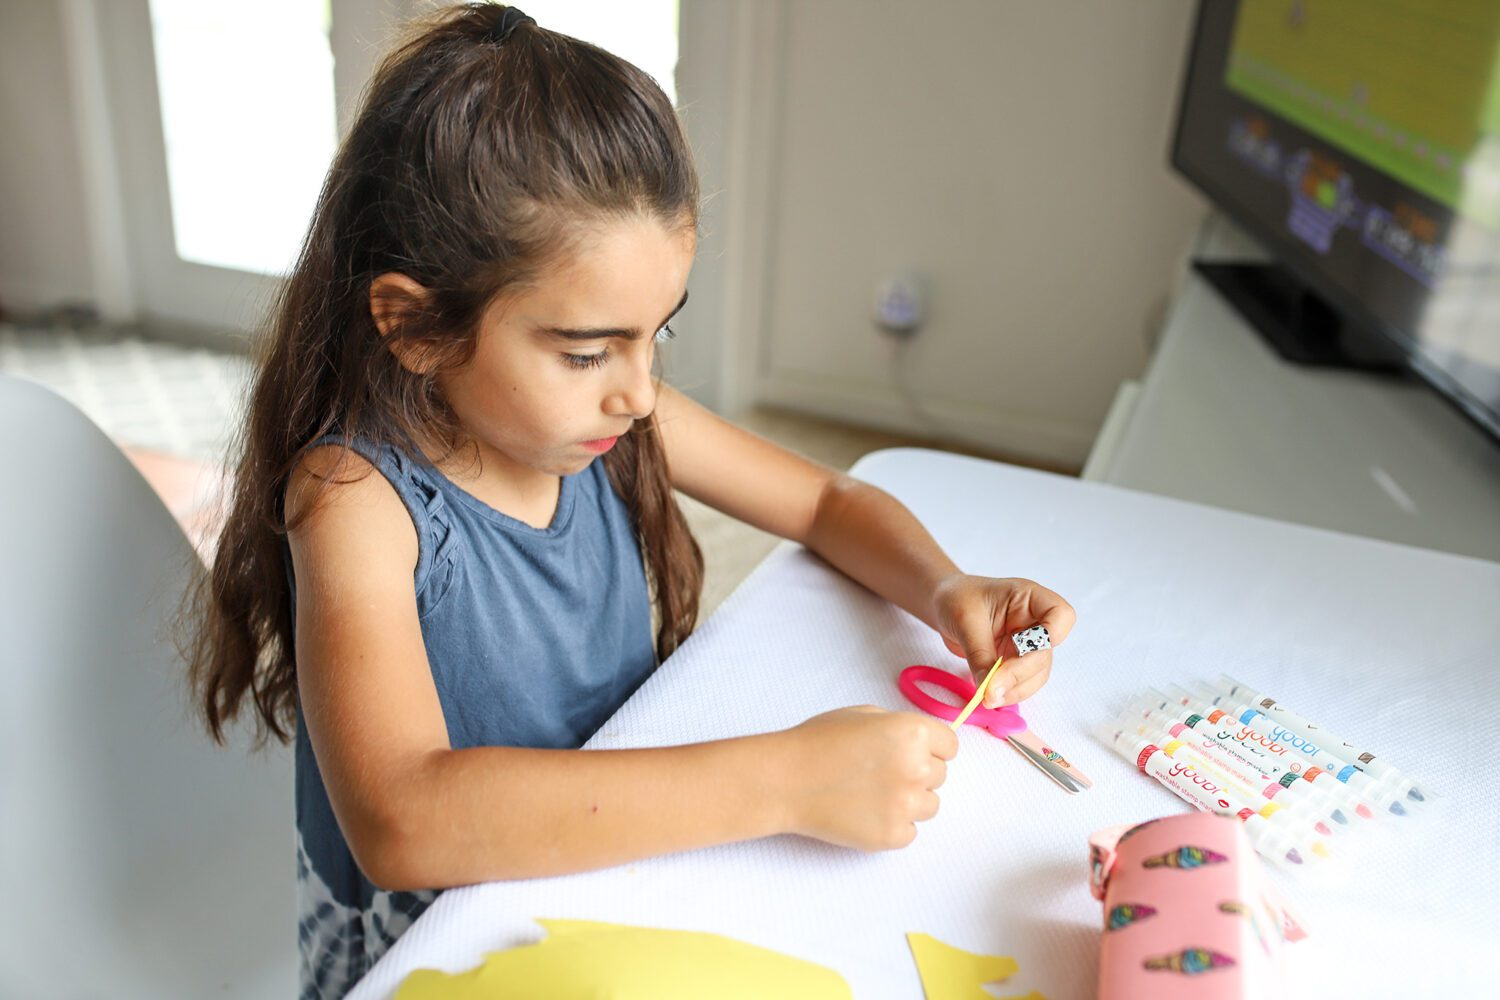 young girl making a craft